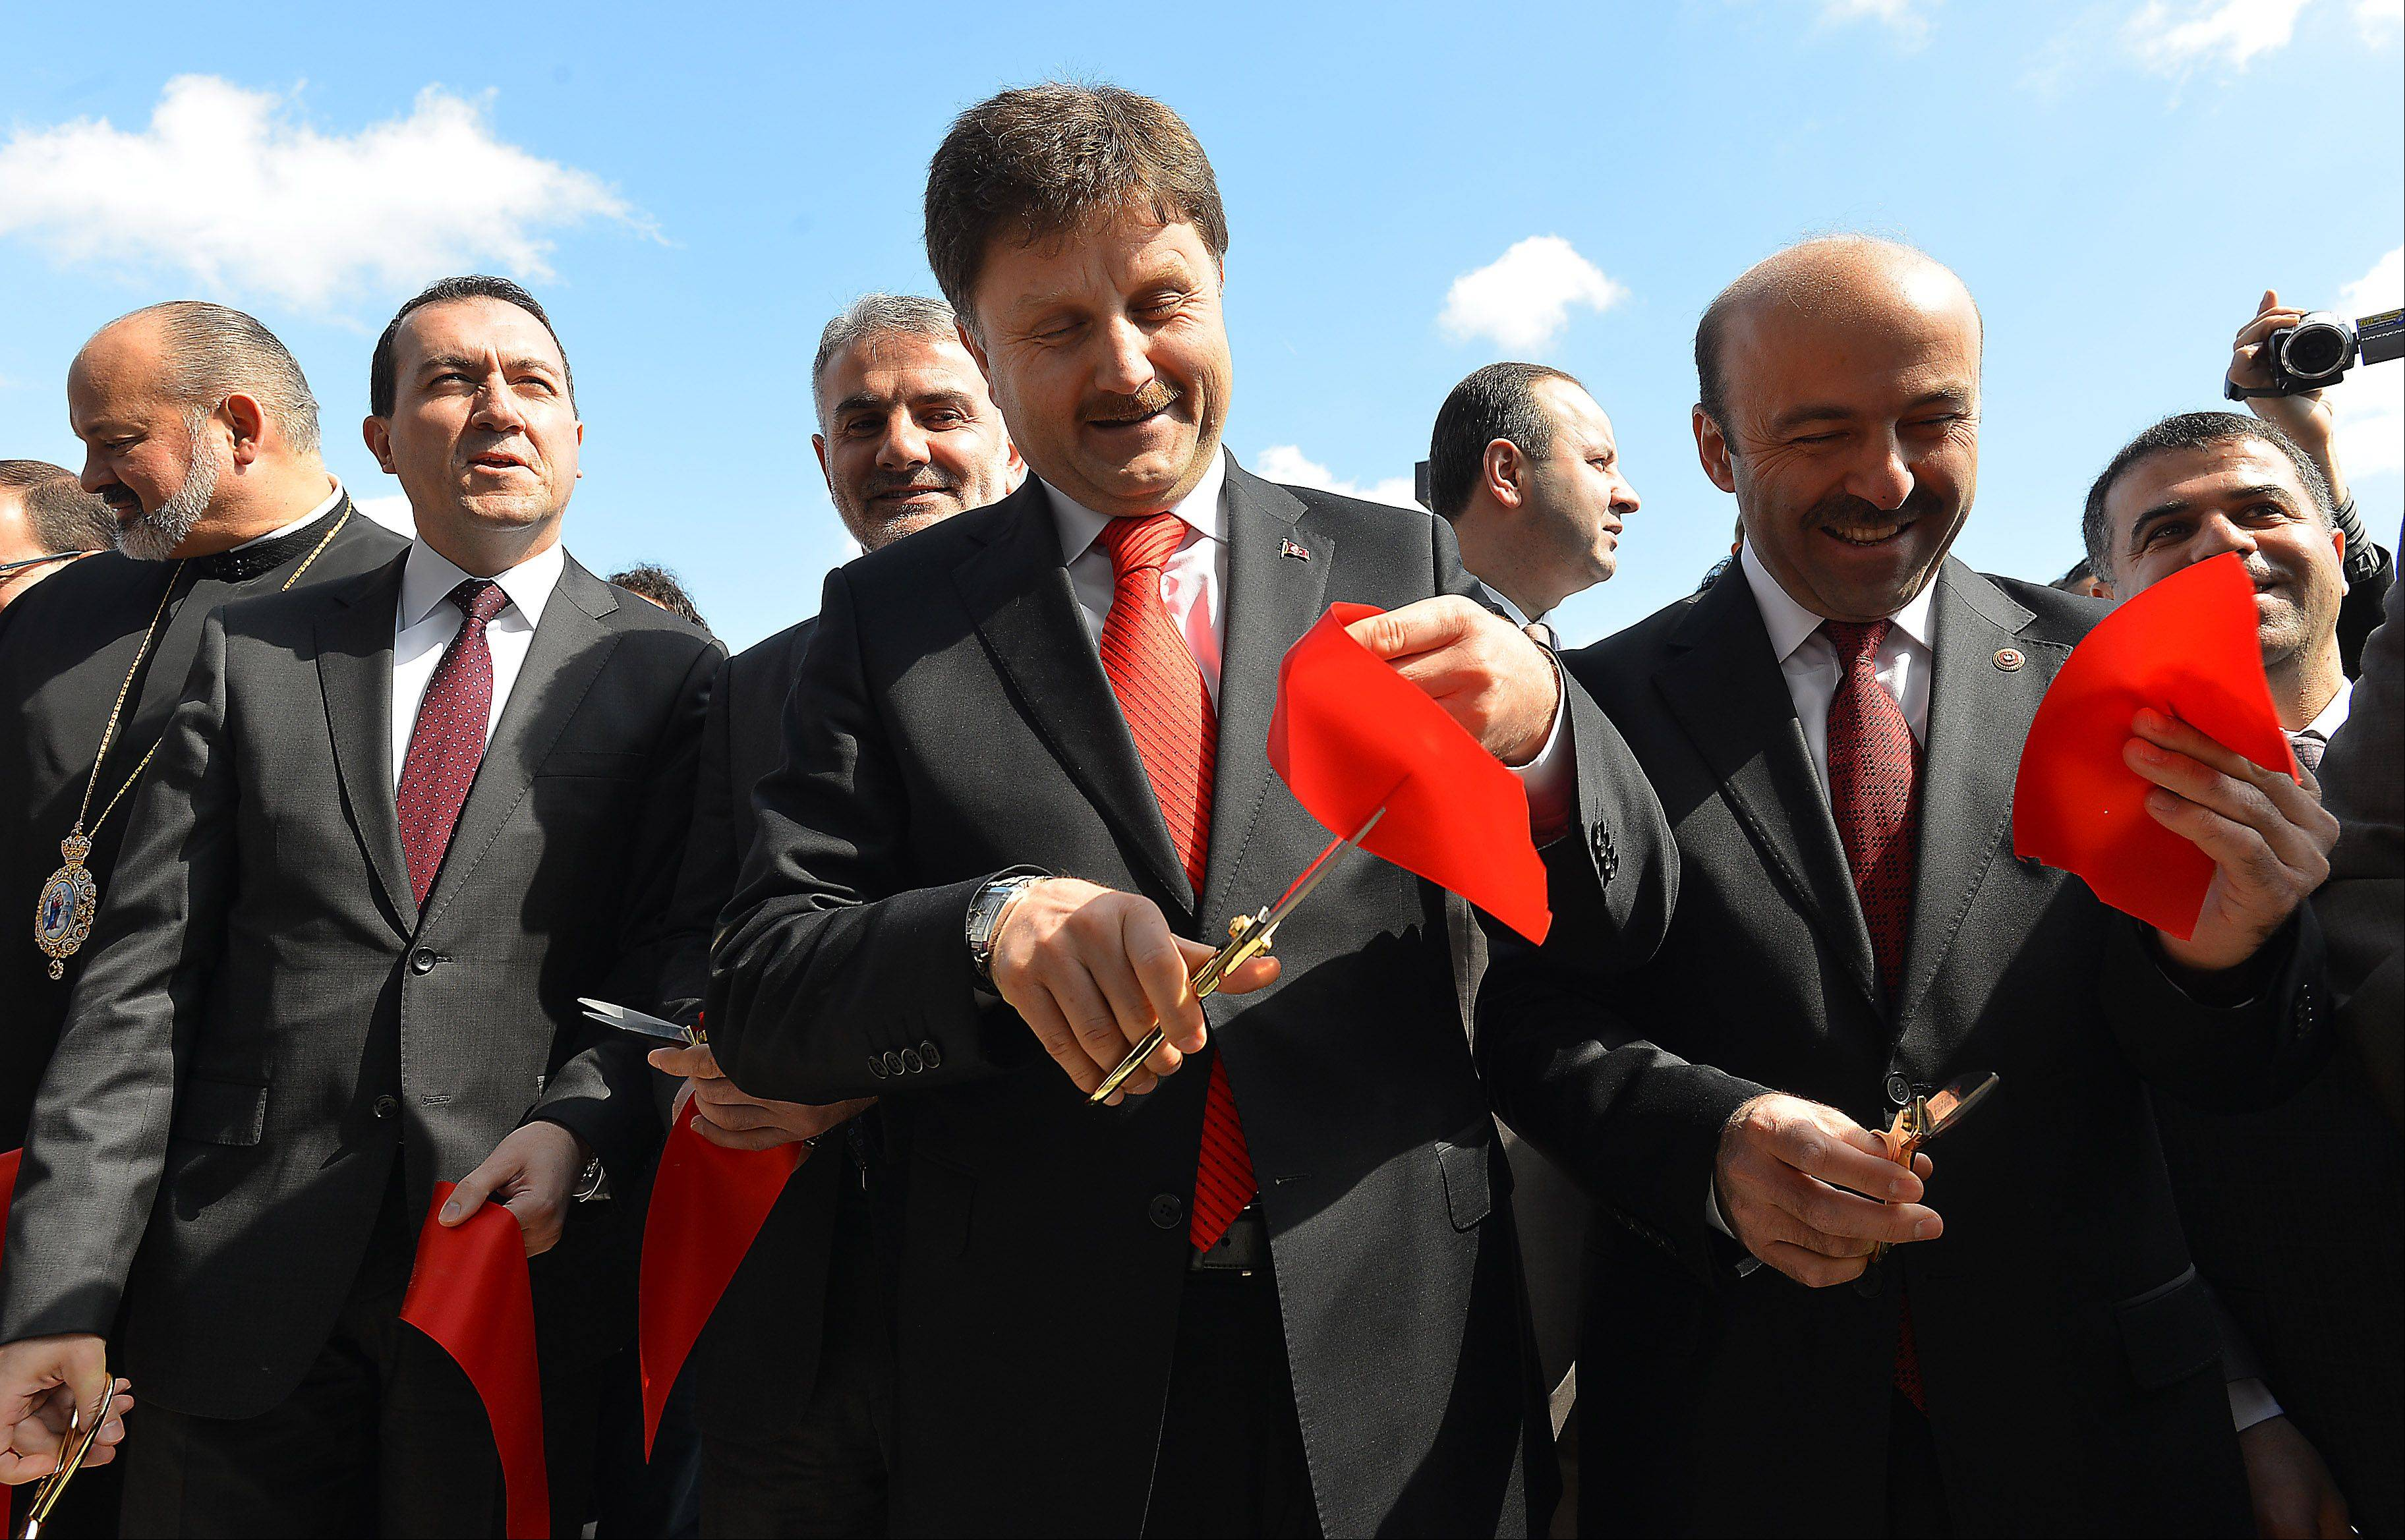 Fahrettin Poyraz, chairperson of the Turkish Parliament, center, takes part in the ribbon-cutting ceremony Saturday to celebrate the Turkish American Society of Chicago Cultural Center's grand opening.